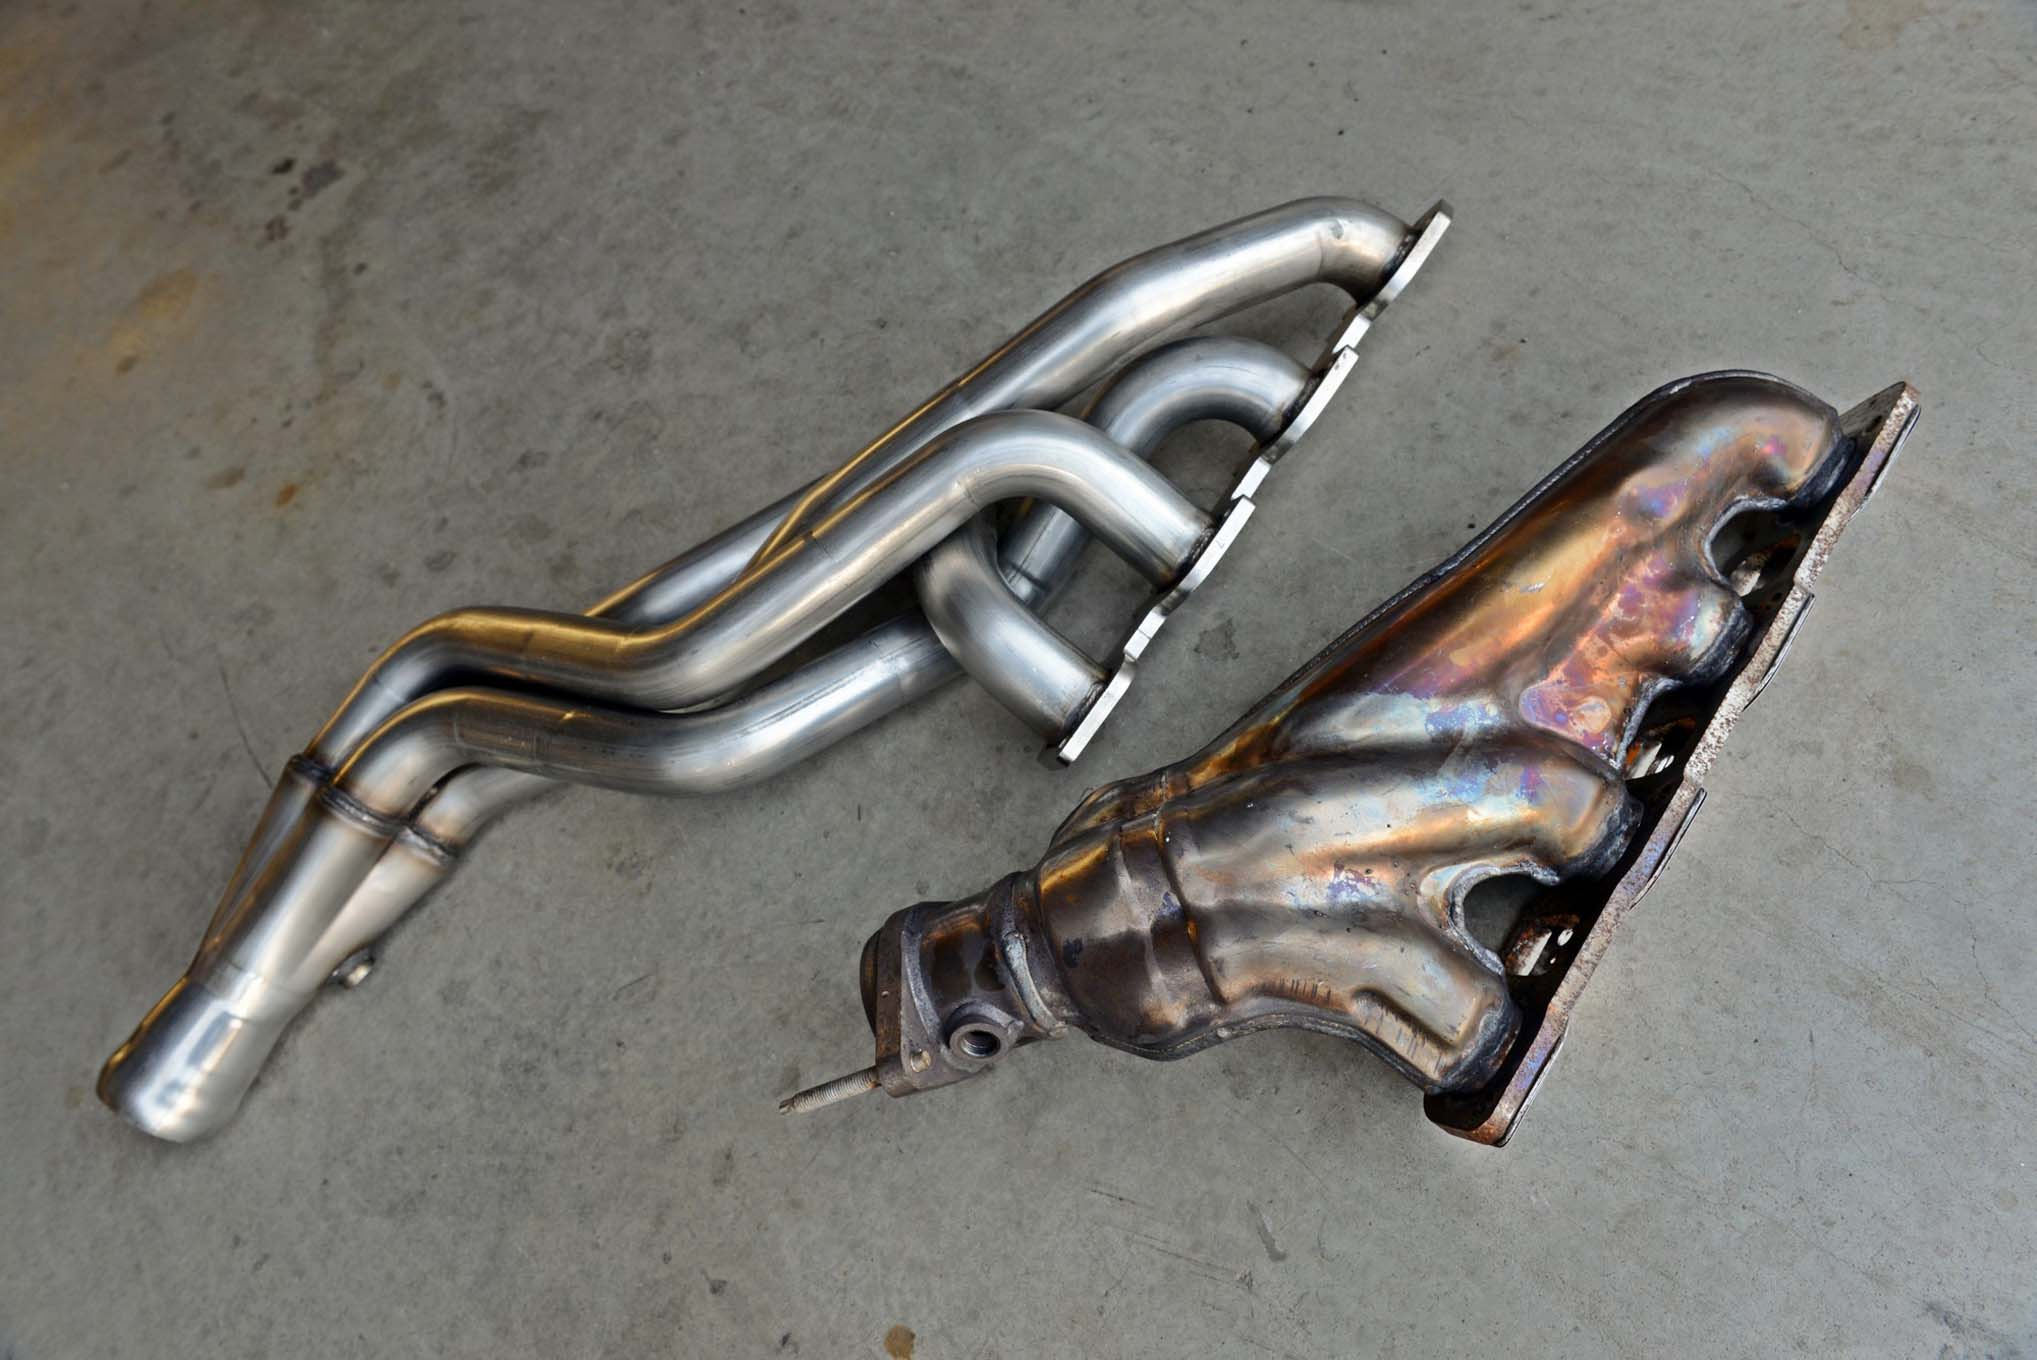 The factory Hellcat exhaust manifolds are impressive pieces, but they look weak next to ARH 2-inch- primary and 3-inch-collector long-tube headers. American Racing Headers reports its full exhaust system gives these cars an additional 39 hp and 39-lb-ft of torque at the rear wheels.